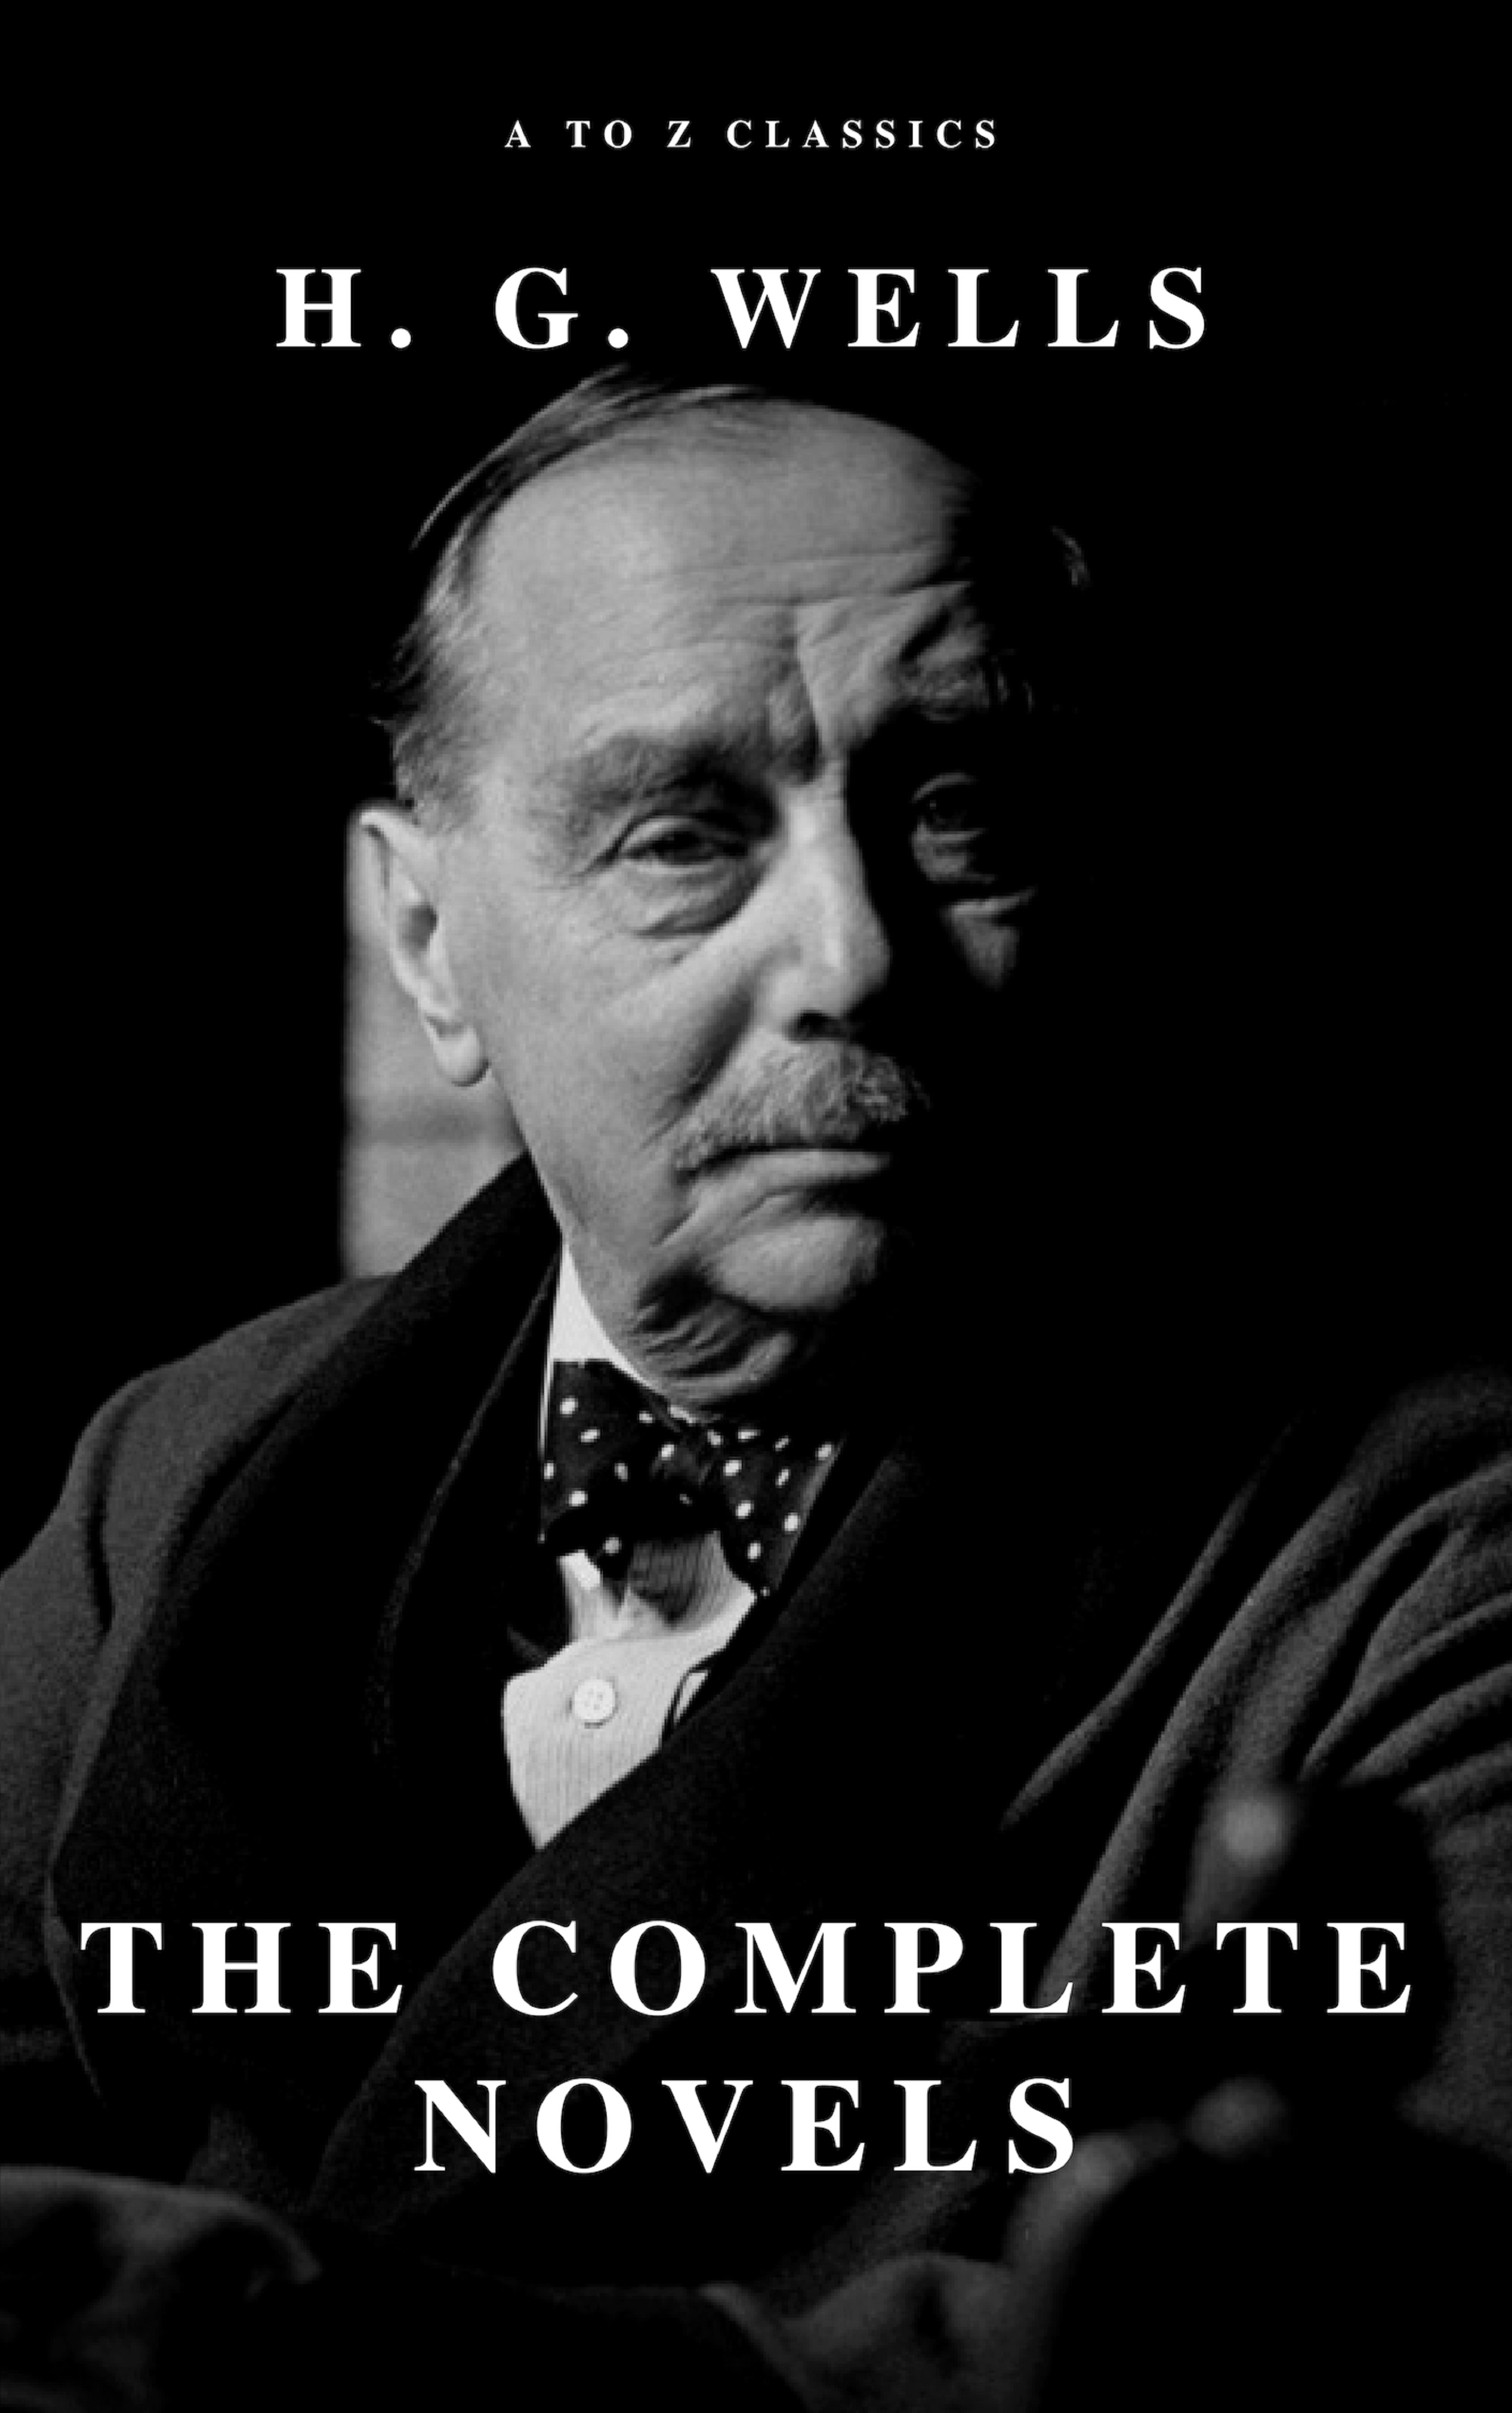 h g wells the complete novels